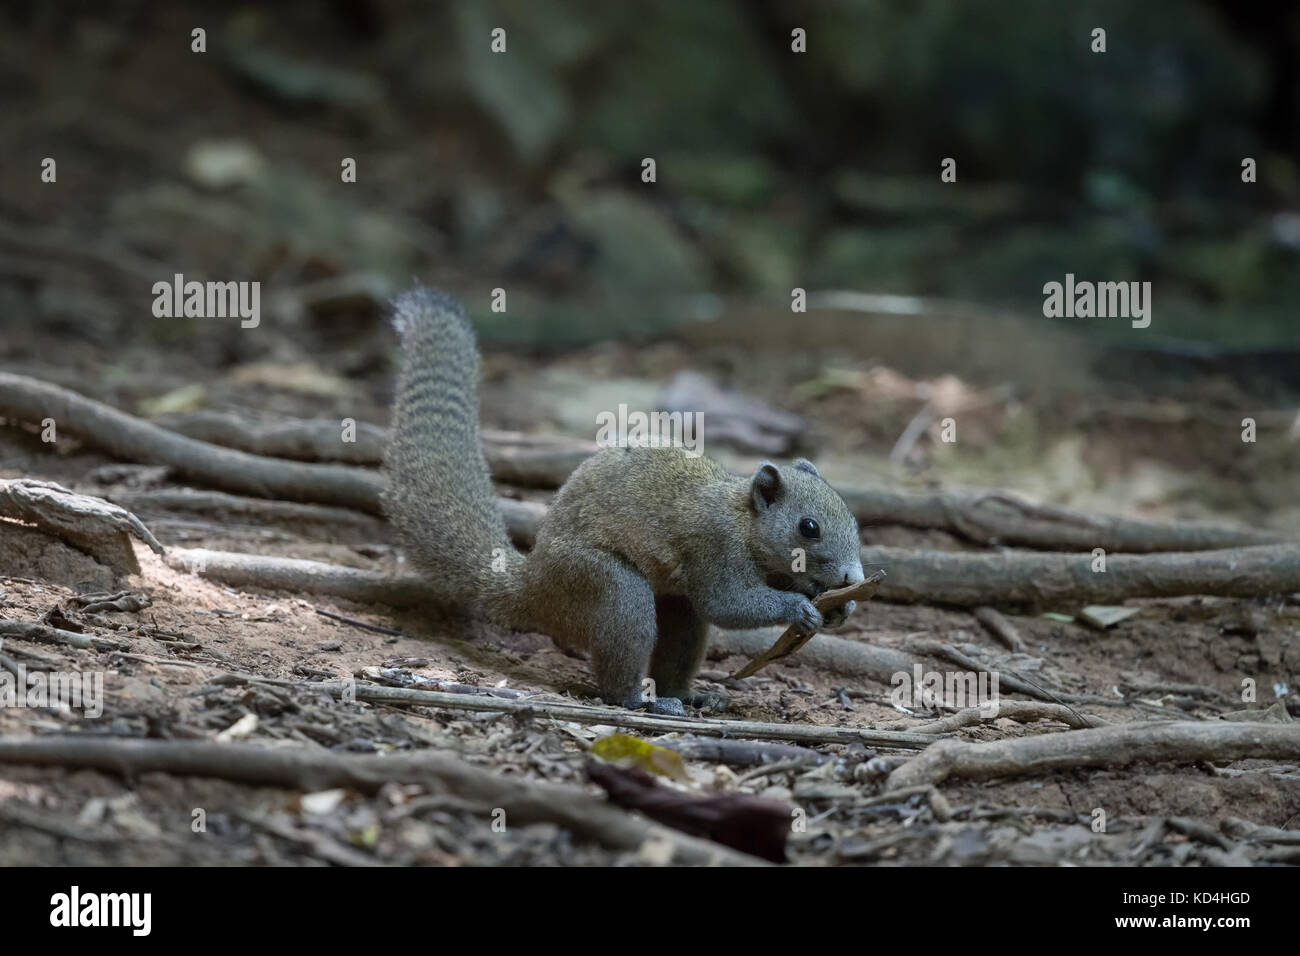 The grey-bellied squirrel (Callosciurus caniceps) is a species of rodent in the family Sciuridae. - Stock Image